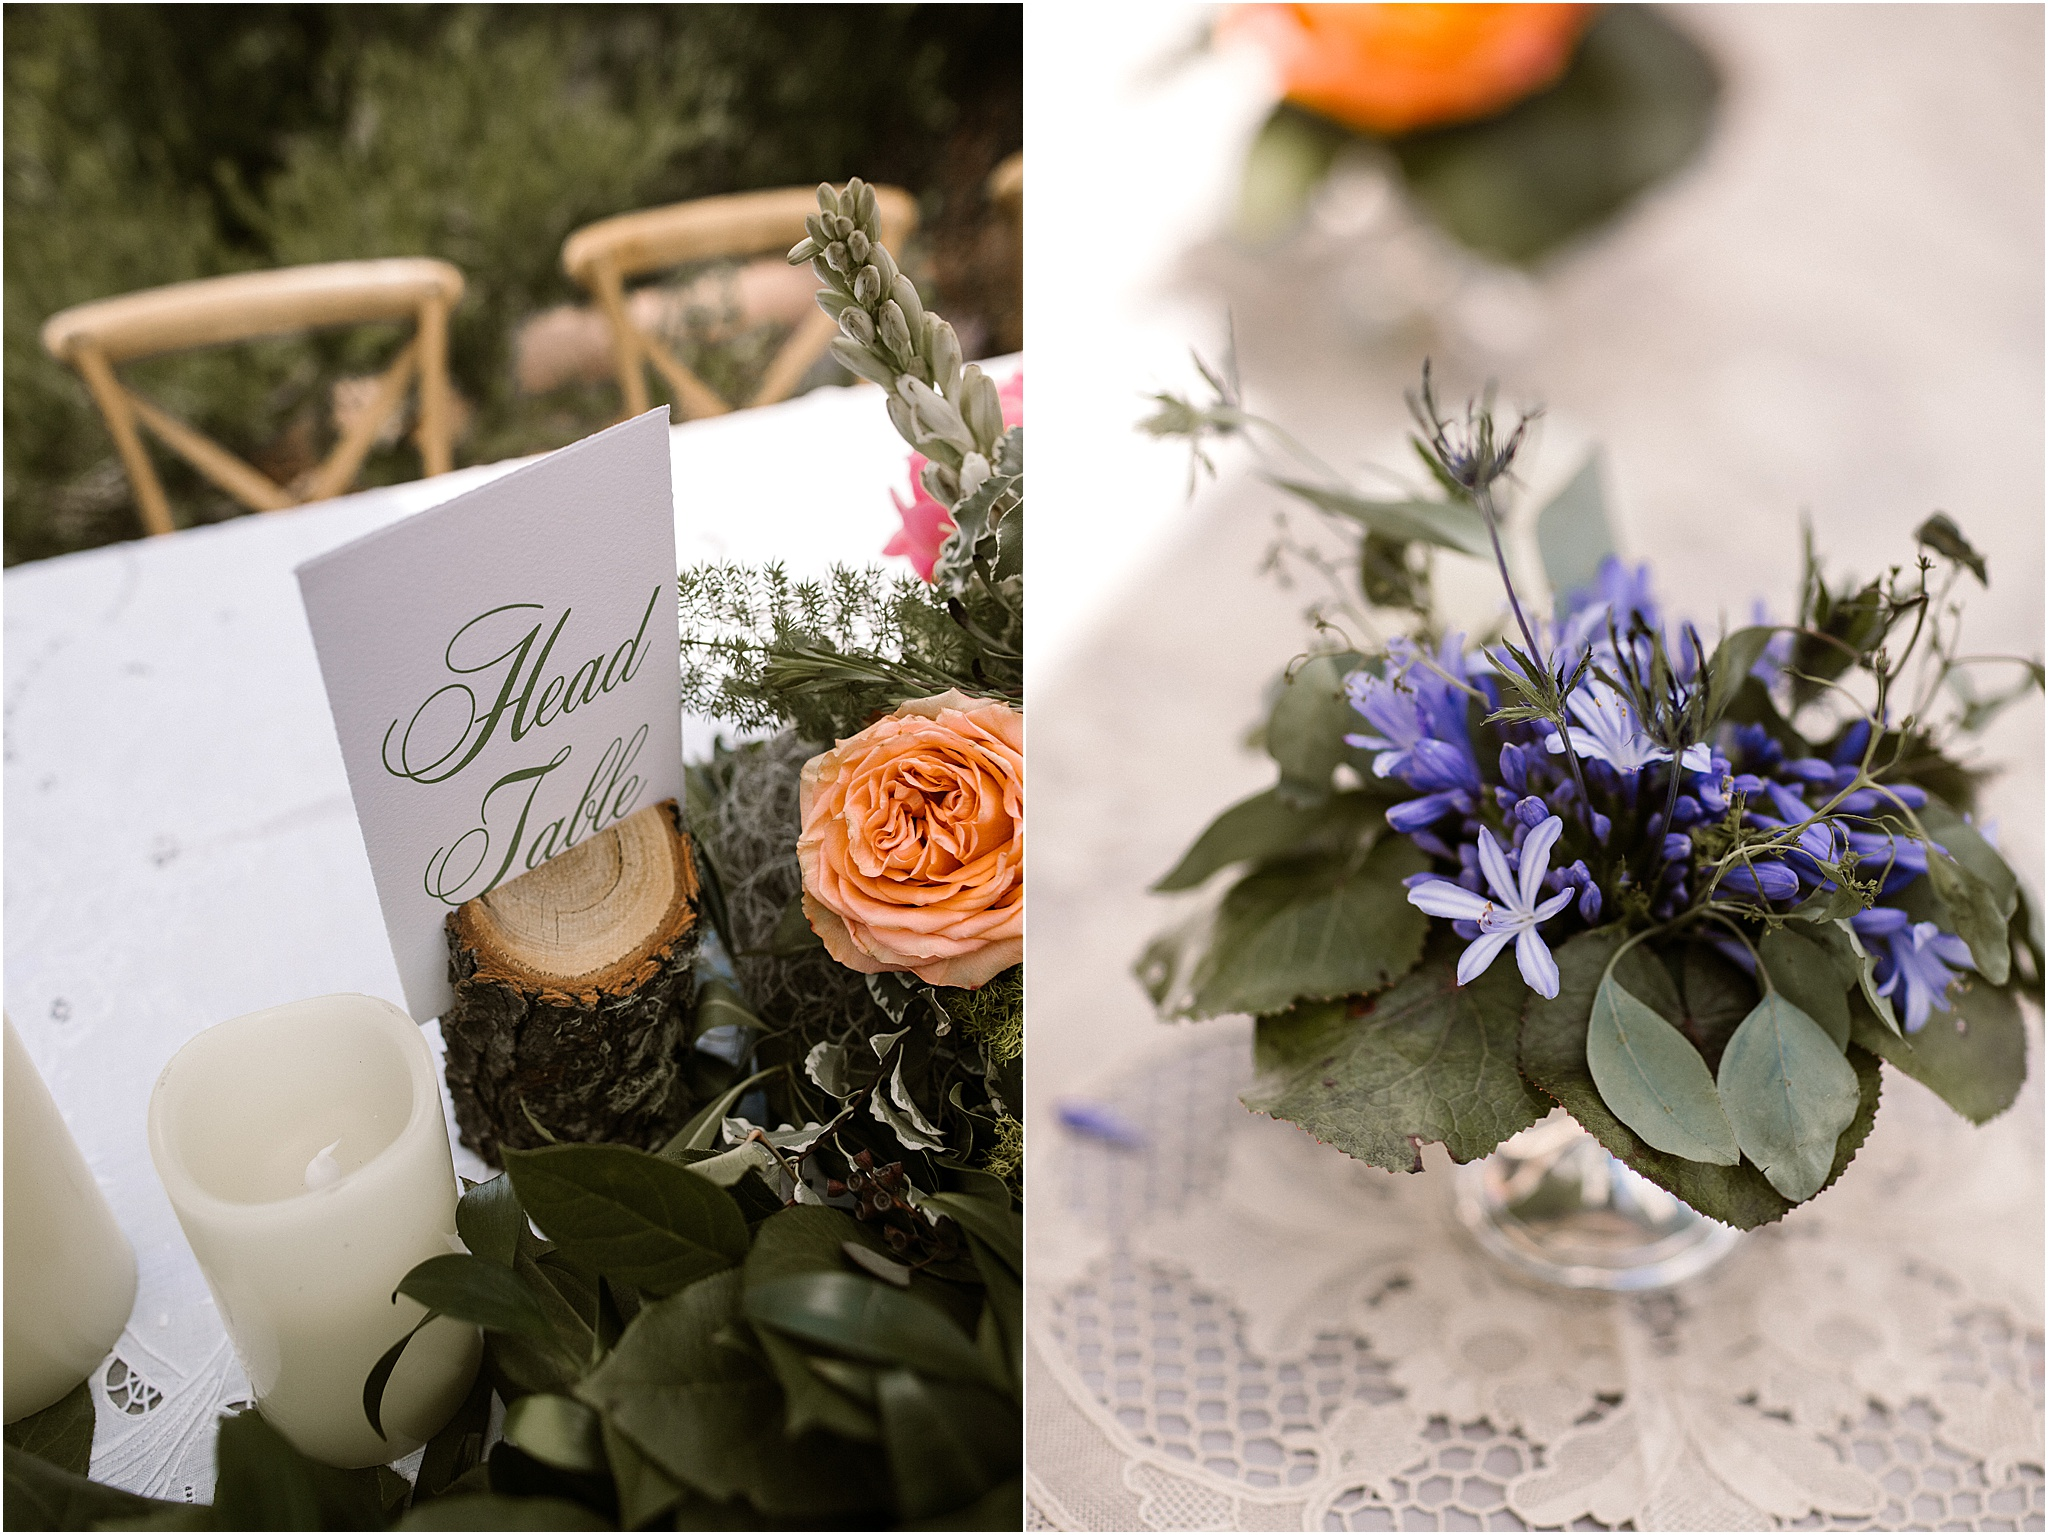 AMELIA_JASON_SANTA FE_ WEDDING_BLUE ROSE PHOTOGRAPHY18